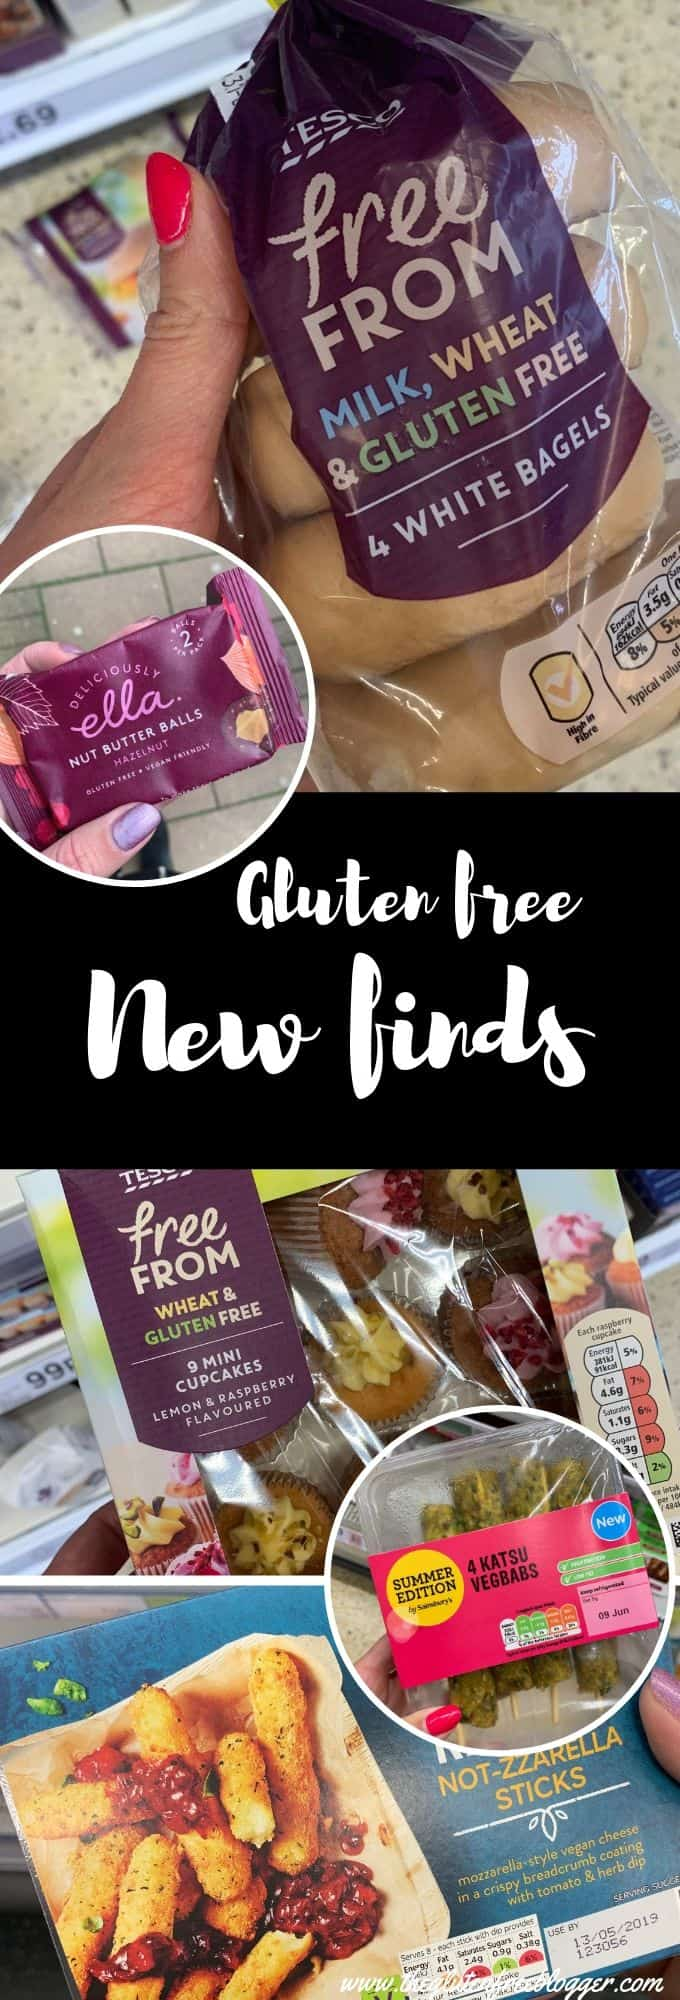 new gluten free finds uk 2019 june products coeliac